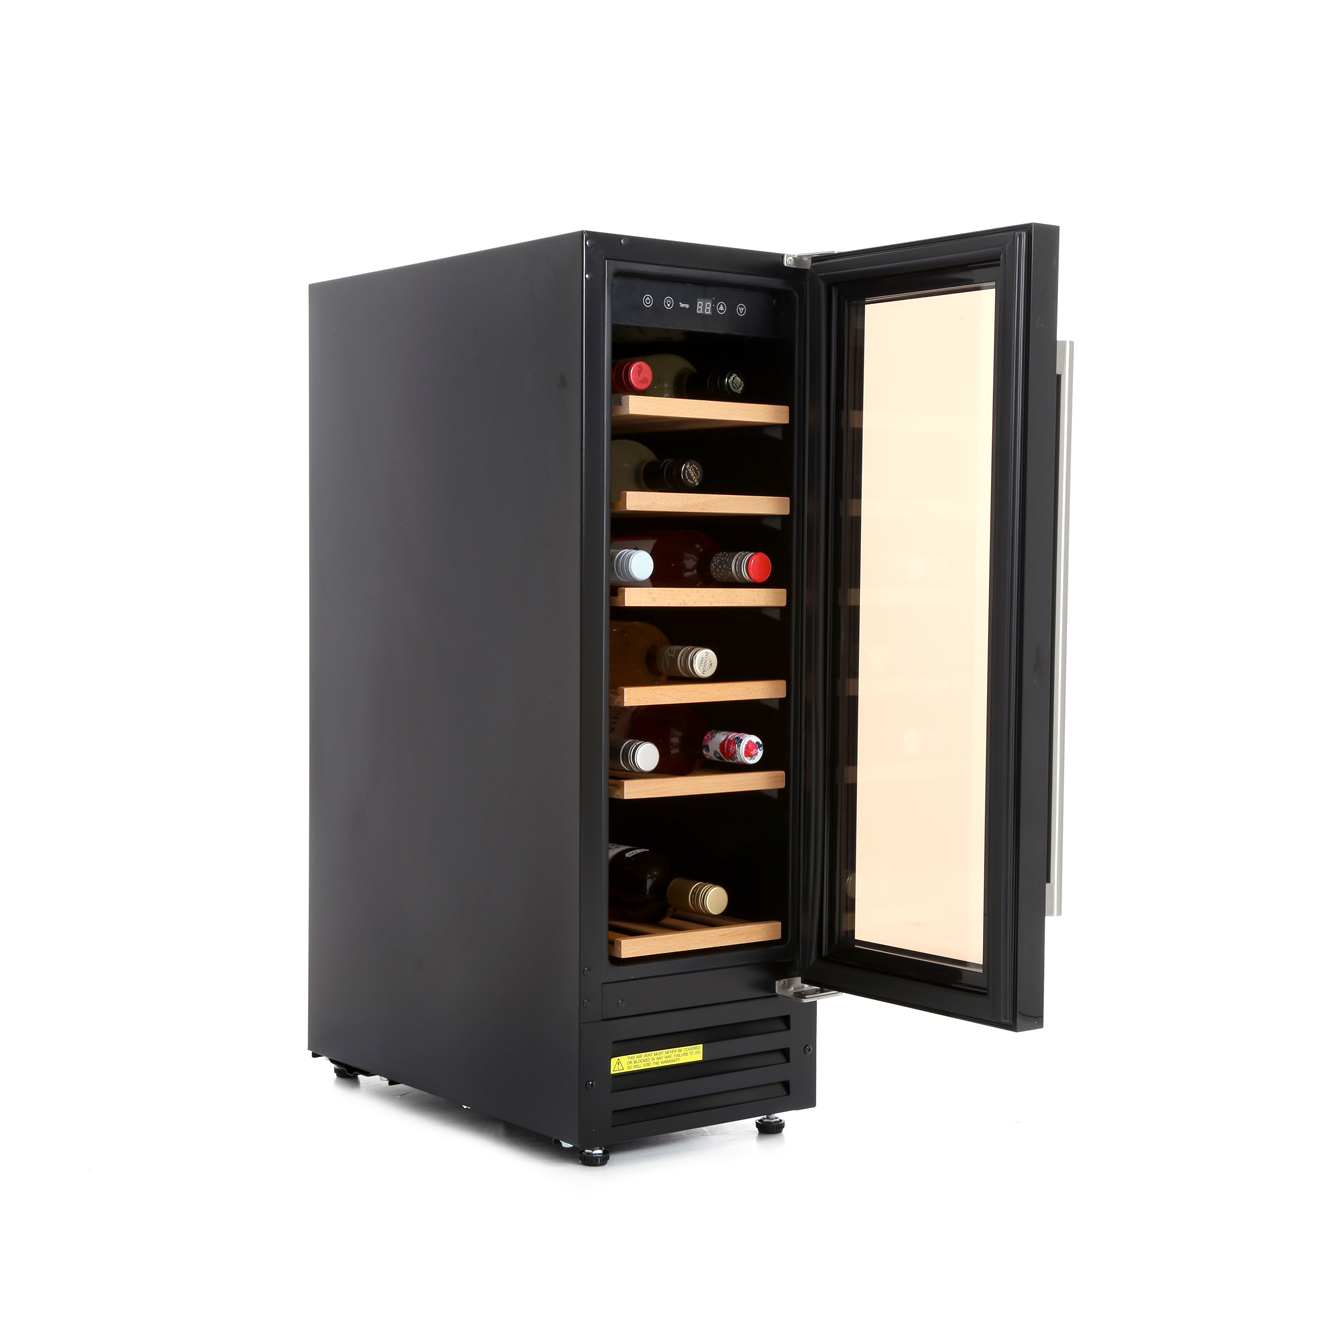 Buy new world 300blkwc wine cooler 444443282 black Wine cooler brands